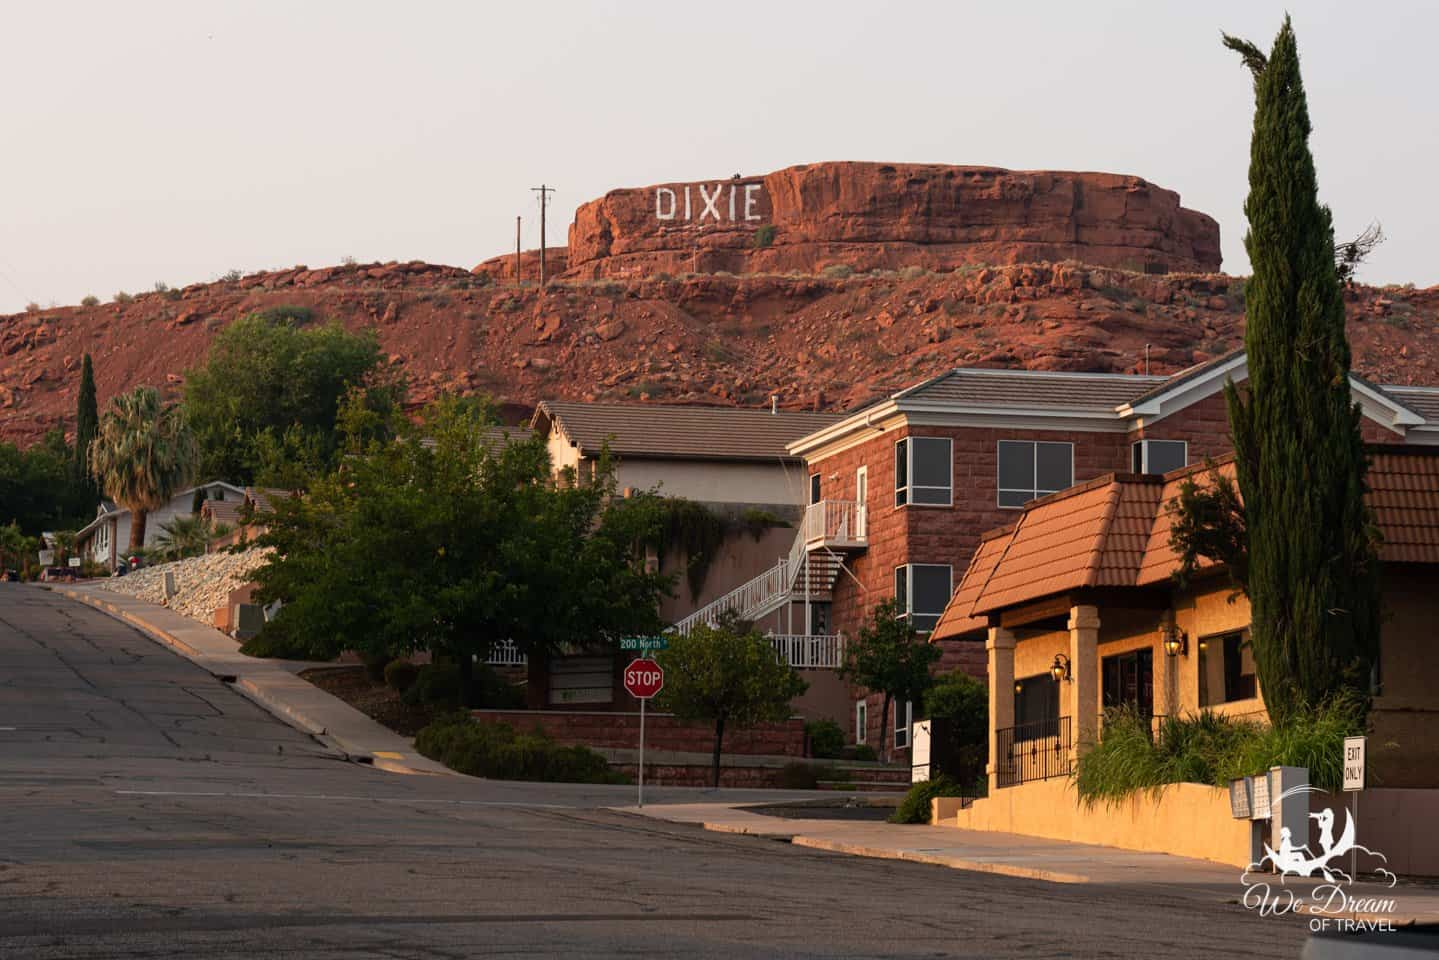 Dixie Sugarloaf in Pioneer Park as seen from downtown.  A popular spot to watch sunset.